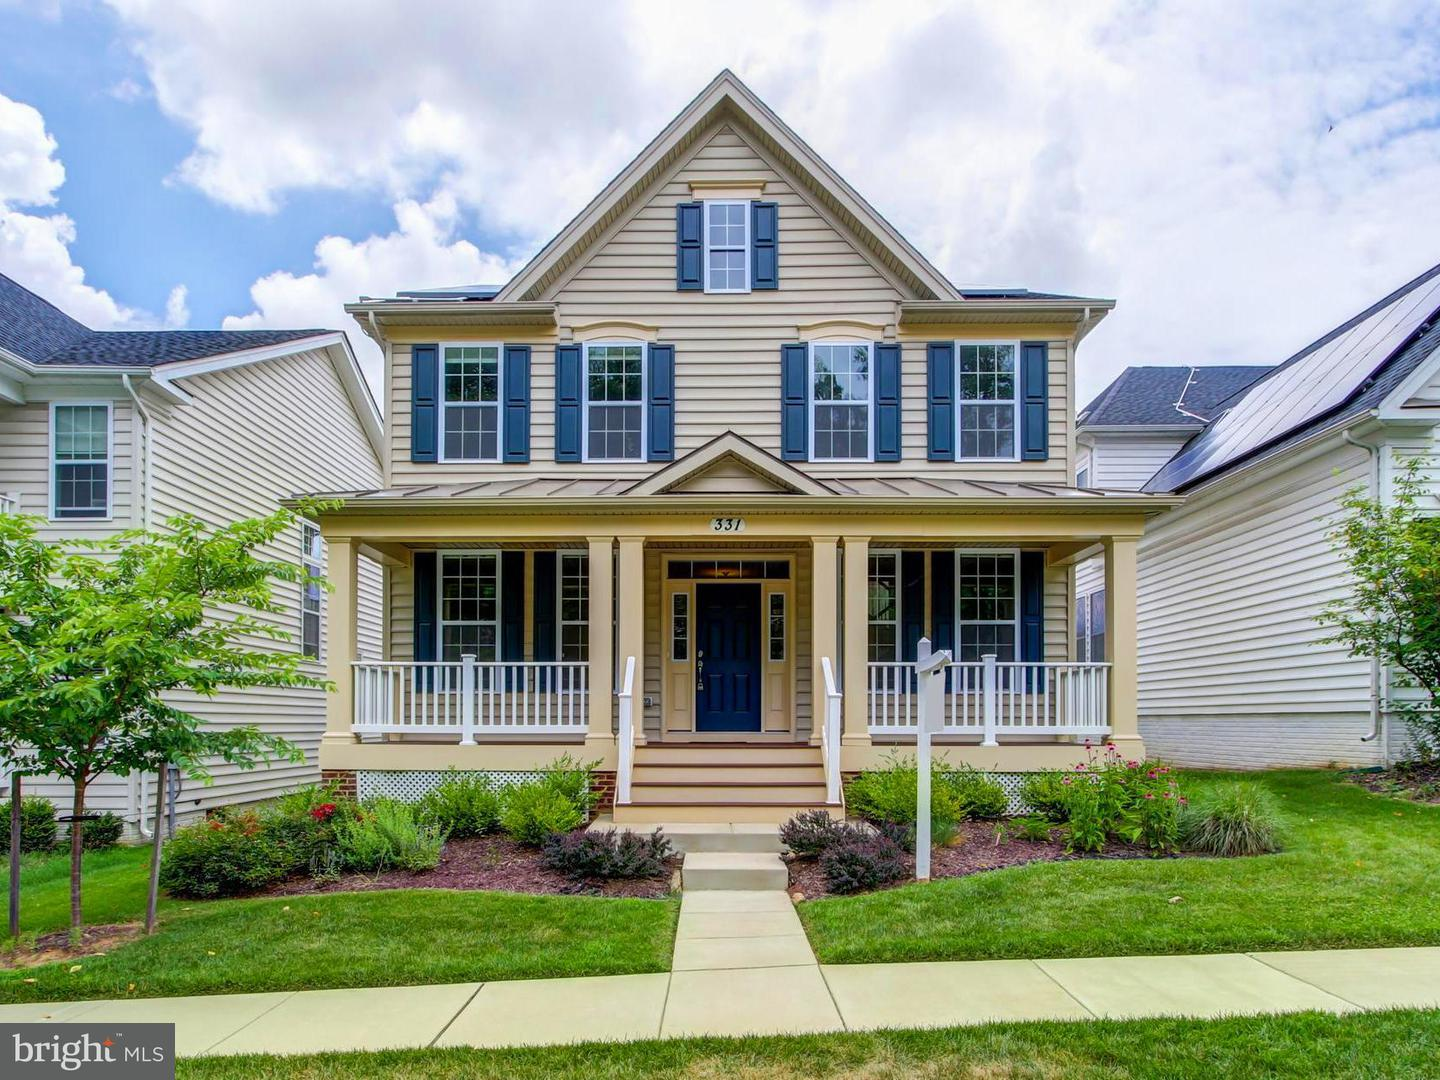 Single Family for Sale at 331 Picea View Ct Derwood, Maryland 20855 United States